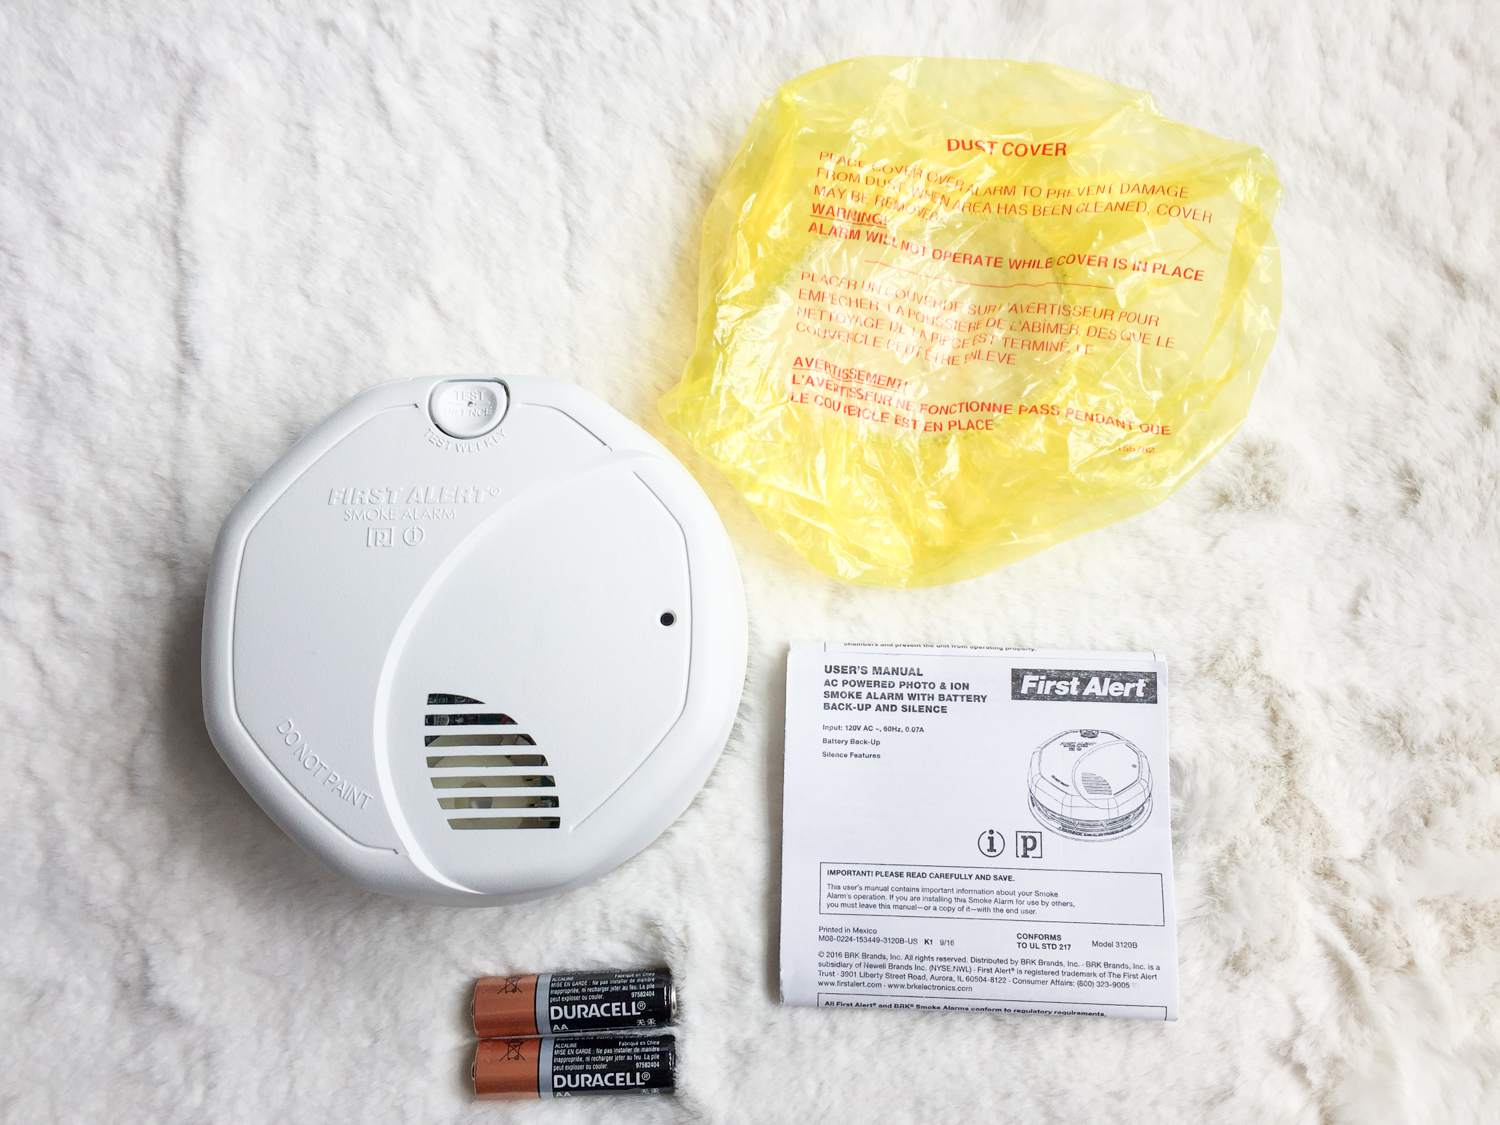 The 8 Best Smoke Detectors of 2019 T Tapping Fire Alarm Wiring Diagram on elevator fire alarm system diagram, fire alarm notification appliance, fire alarm lights, fire alarm frame, fire system lights, fire alarm panel, fire alarm transformer, fire alarm capacitor, basic fire alarm system diagram, fire alarm push down, vista 128 panel diagram, fire alarm antenna, fire alarm call point, fire alarm circuit diagram, fire alarm symbols, fire alarm switch, fire alarm layout diagram, fire alarm systems types, fire alarm connection diagram, fire alarm radio,